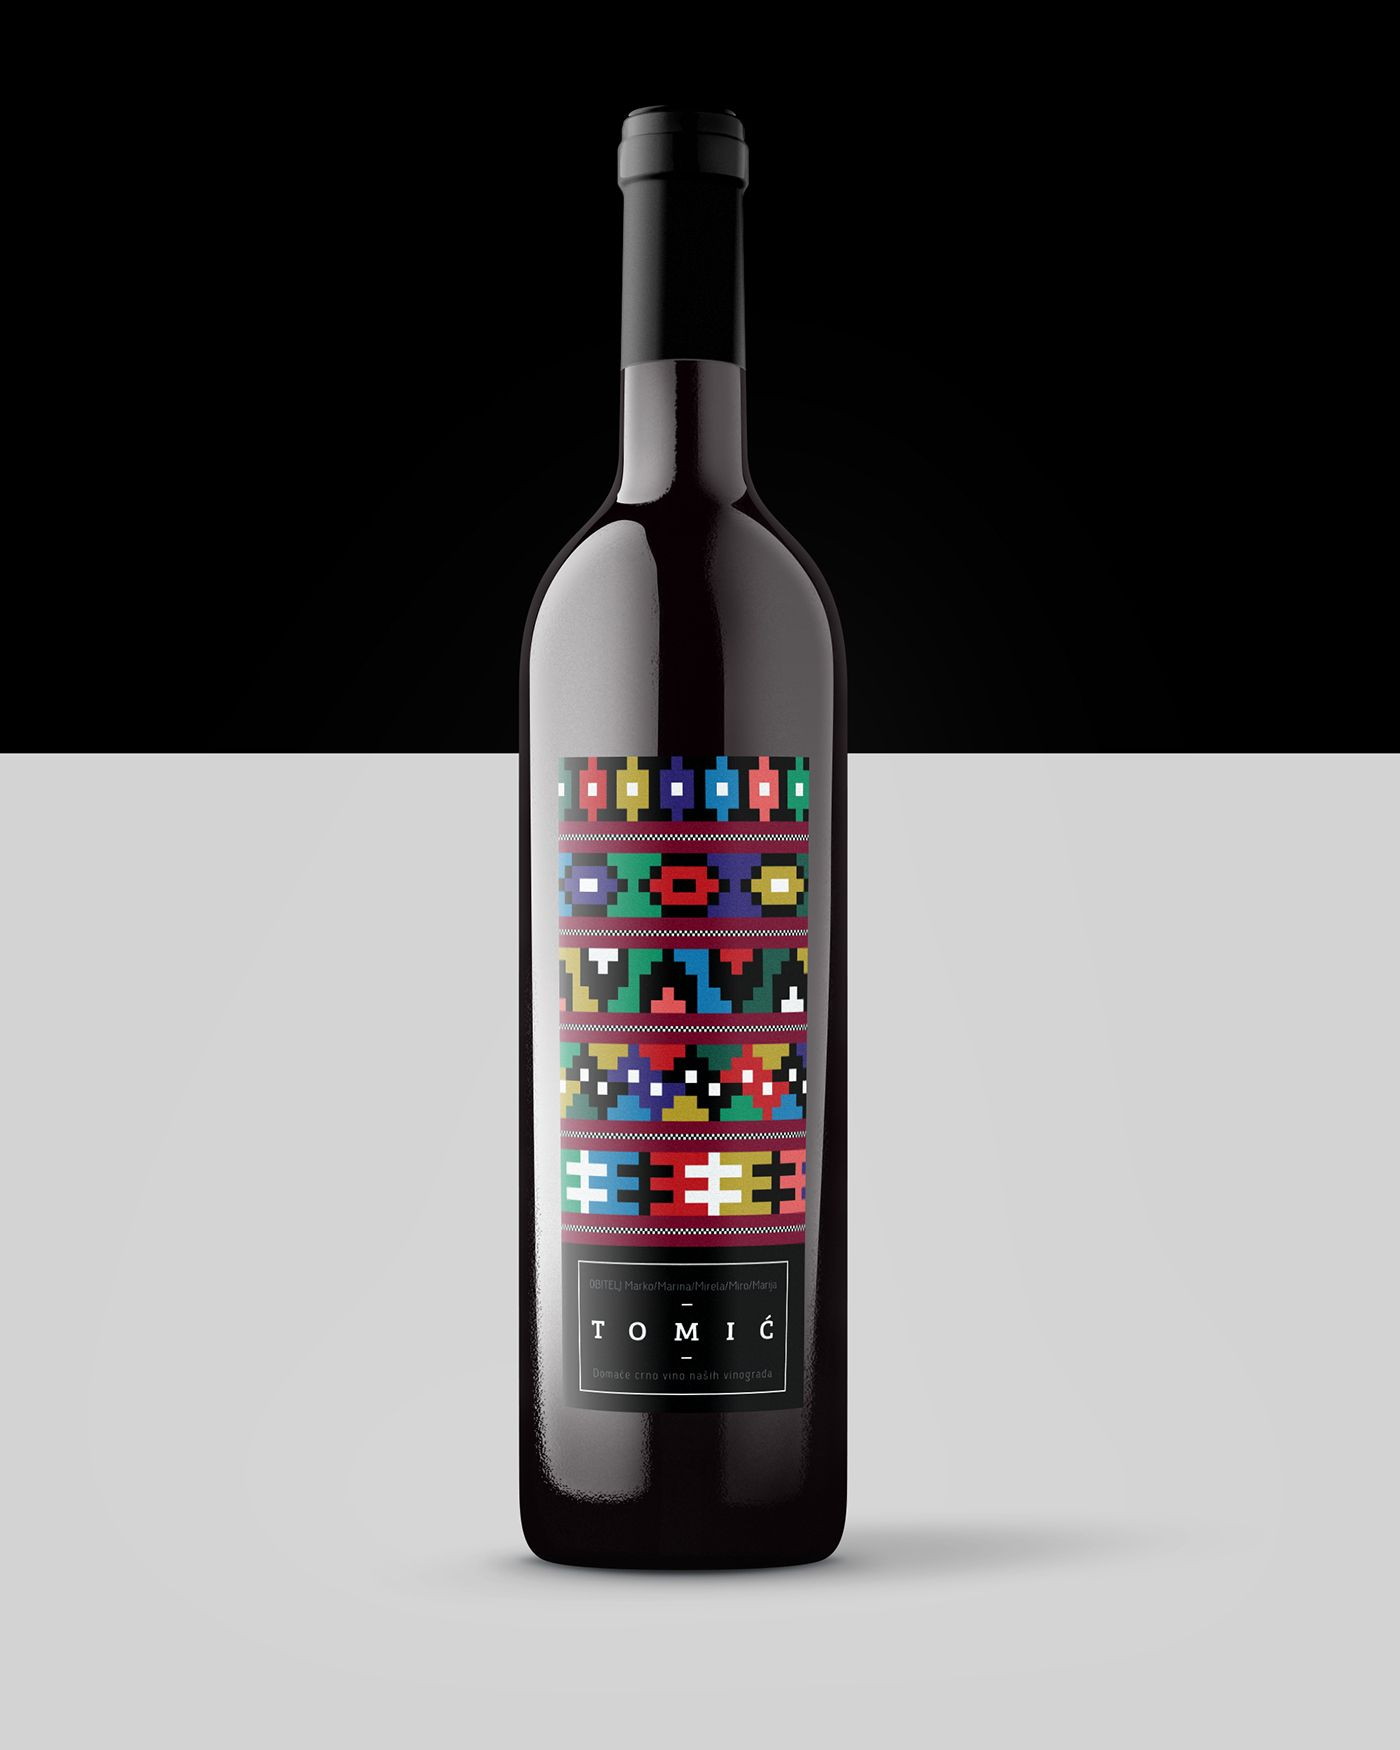 this wine label is inspiredtraditional decorative etno